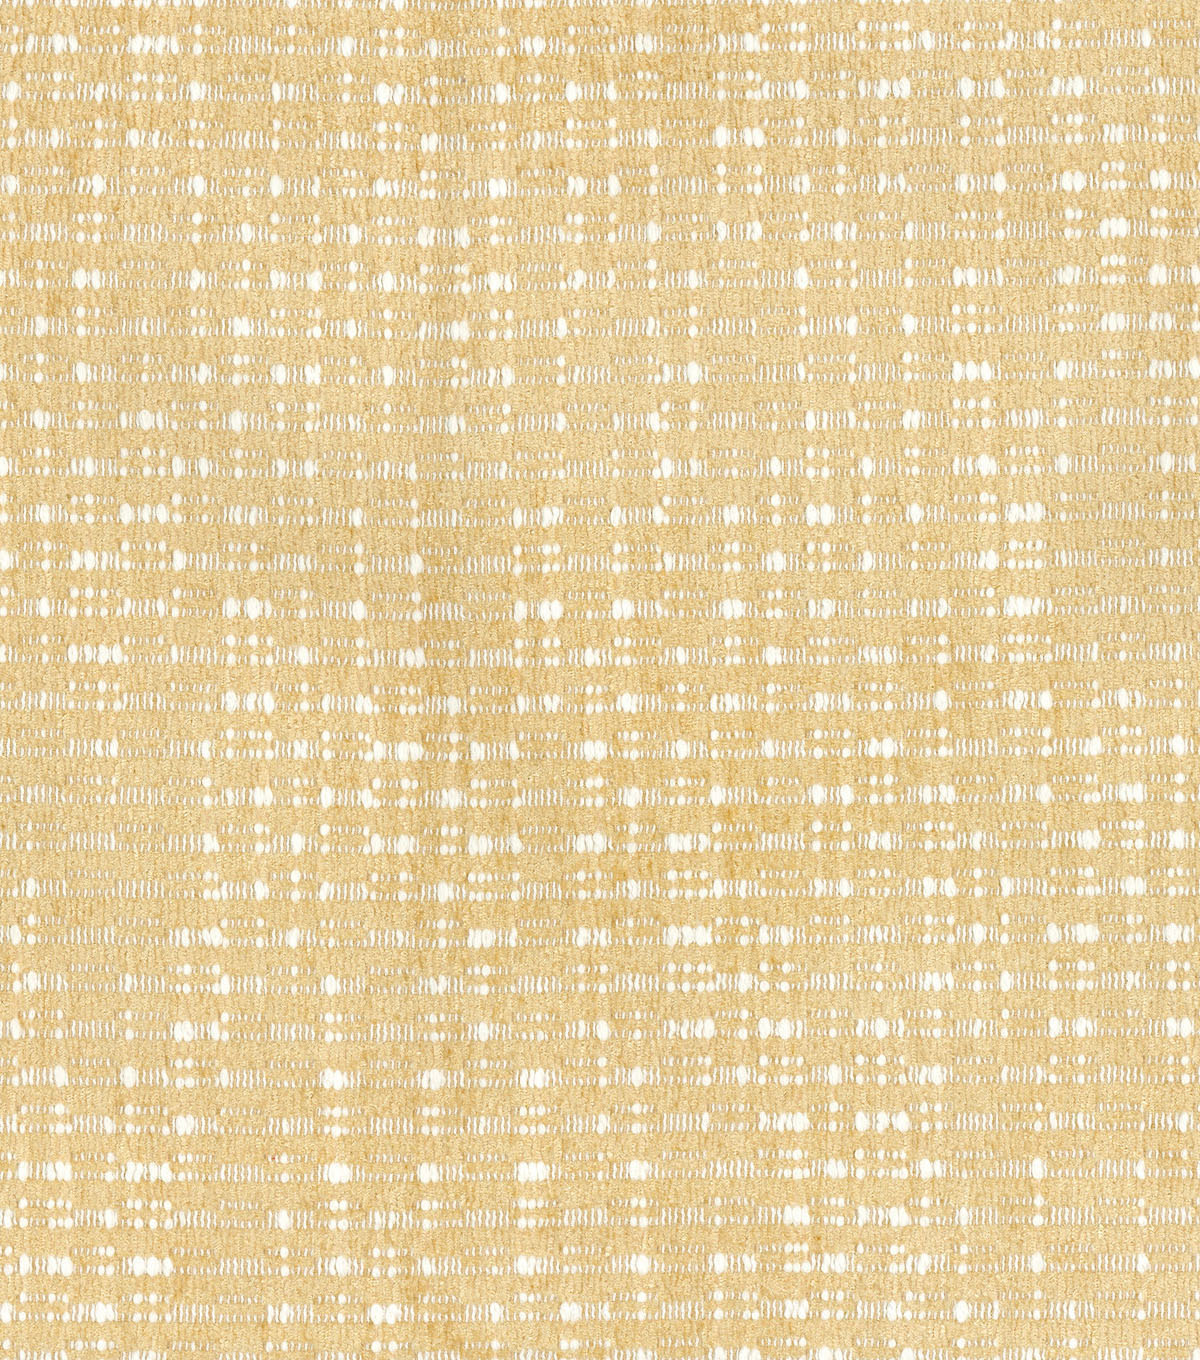 HGTV Home Upholstery Fabric-Token Texture/Tussah